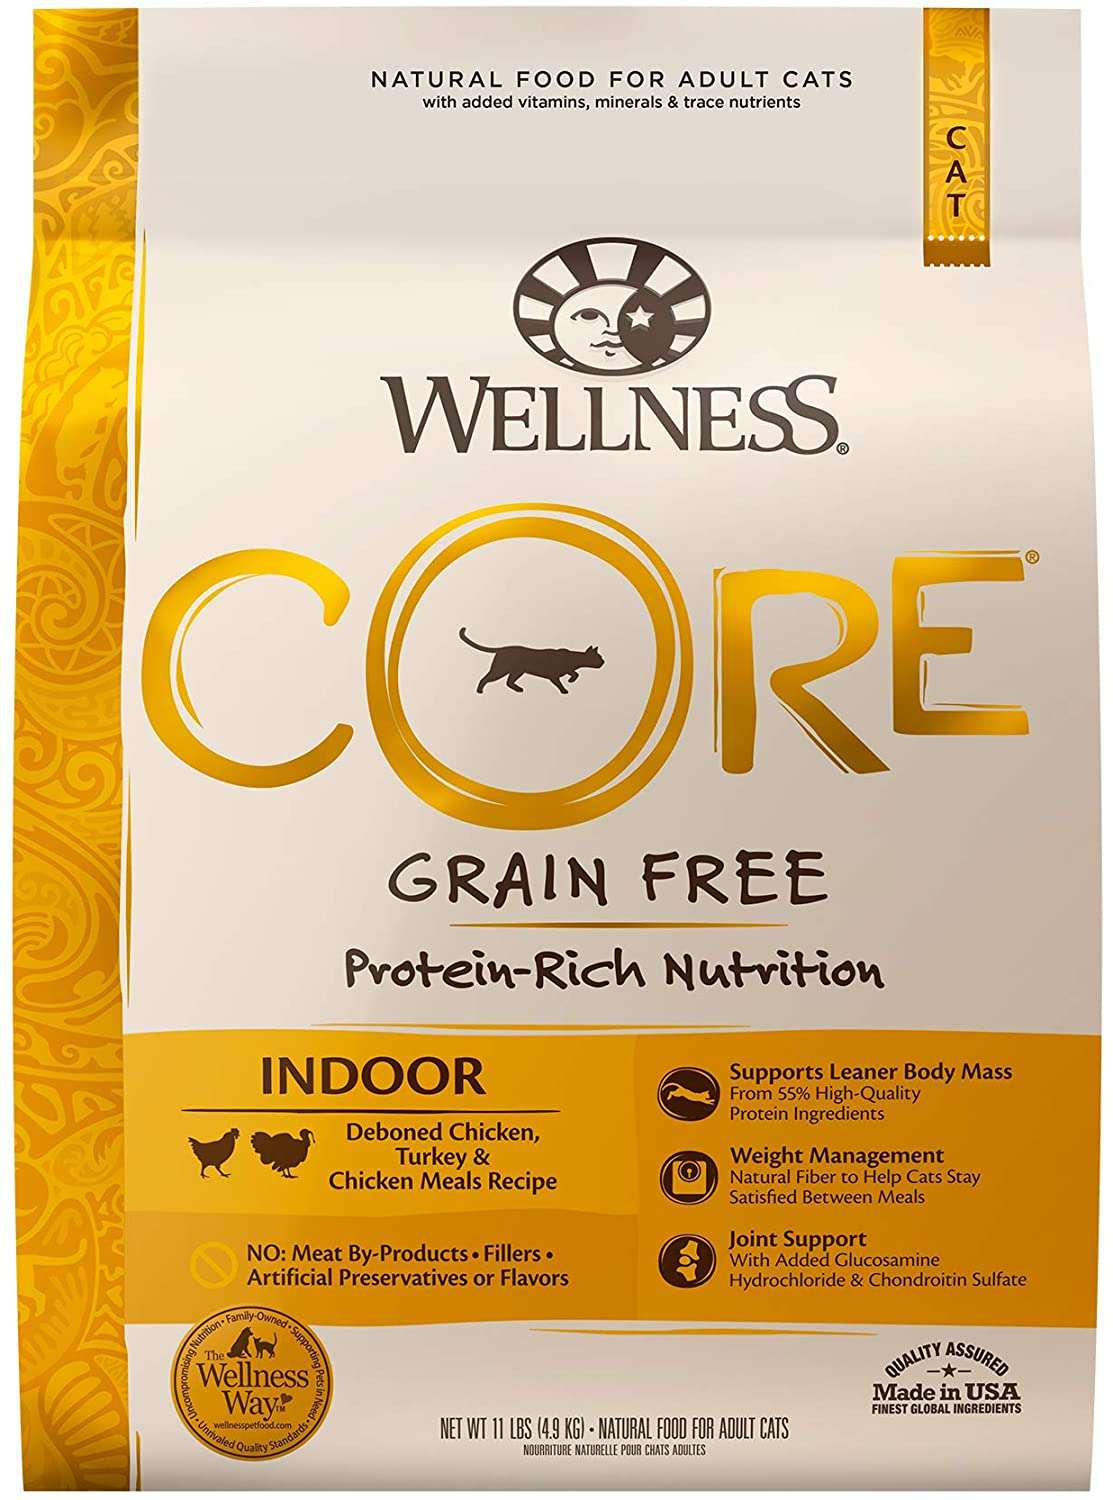 Wellness CORE Grain Free Natural Dry Food for Adult Cats